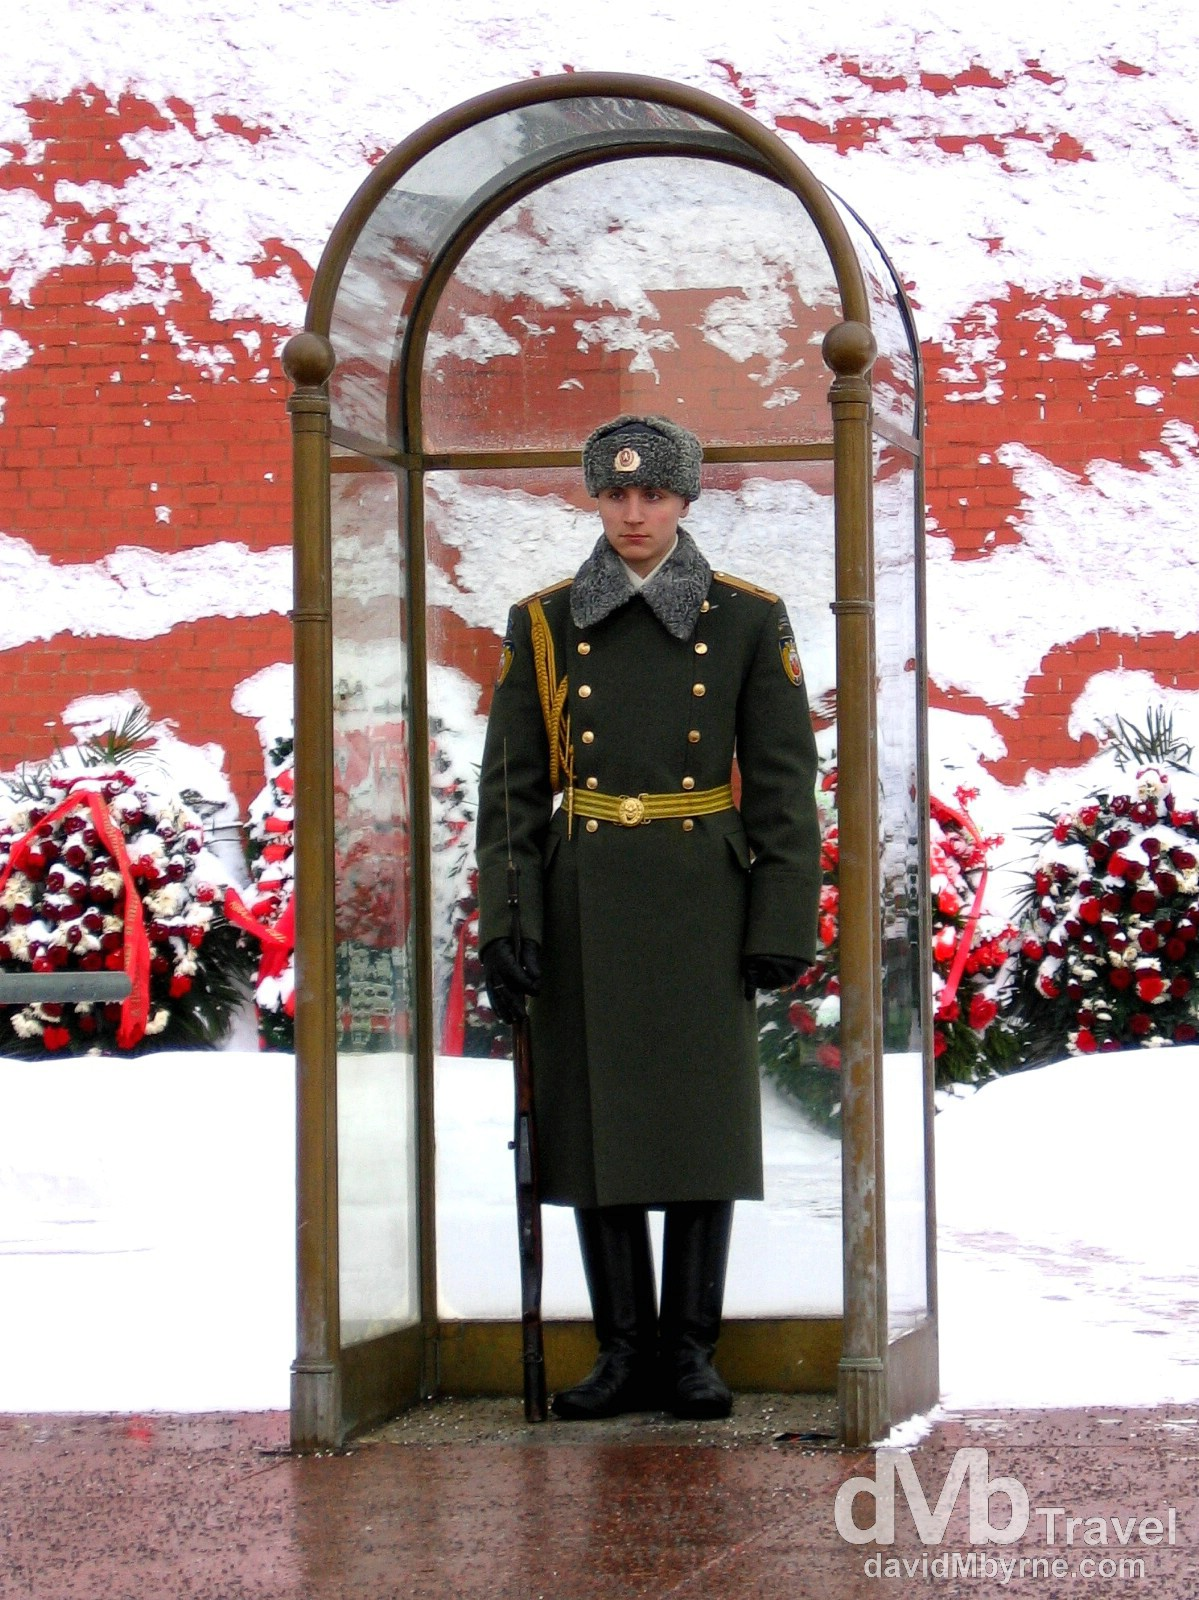 A guard at the Tomb of The Unknown Soldier at the base of walls of the Kremlin in Alexandrrowsky Garden, Moscow, Russia. February 25, 2006.